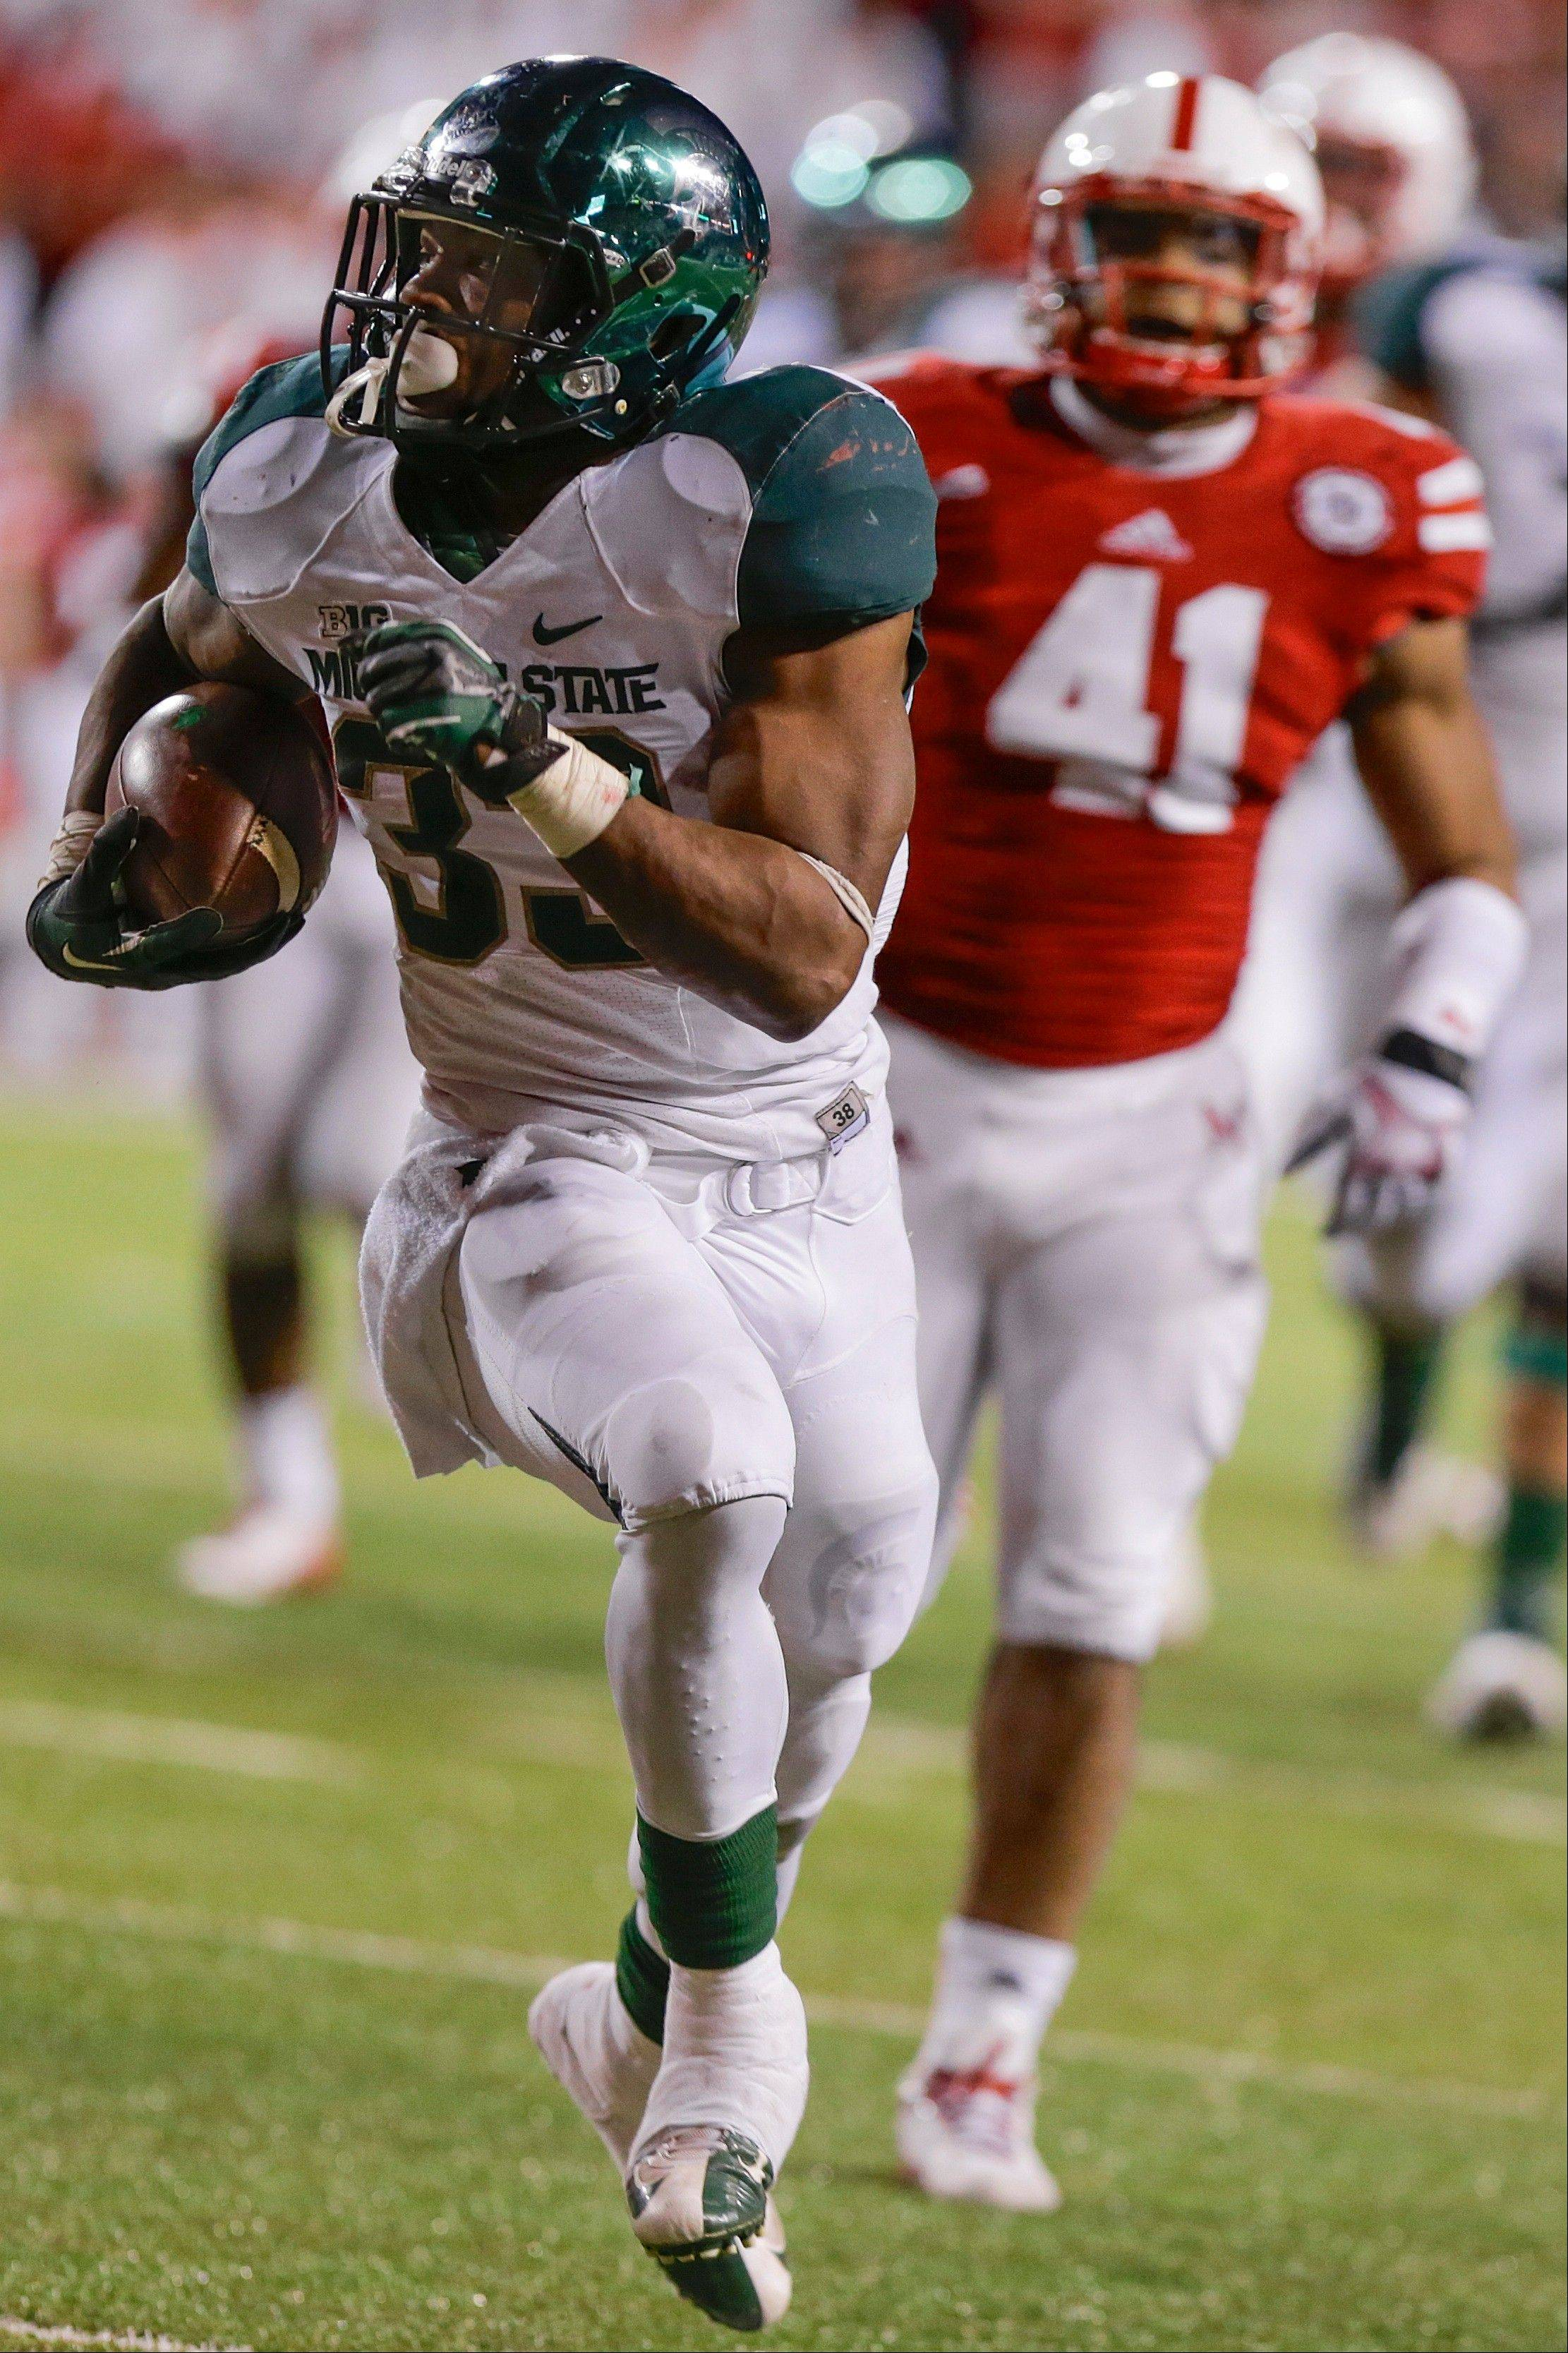 Michigan State running back Jeremy Langford runs for a touchdown while pursued by Nebraska linebacker David Santos last Saturday in Lincoln, Neb.